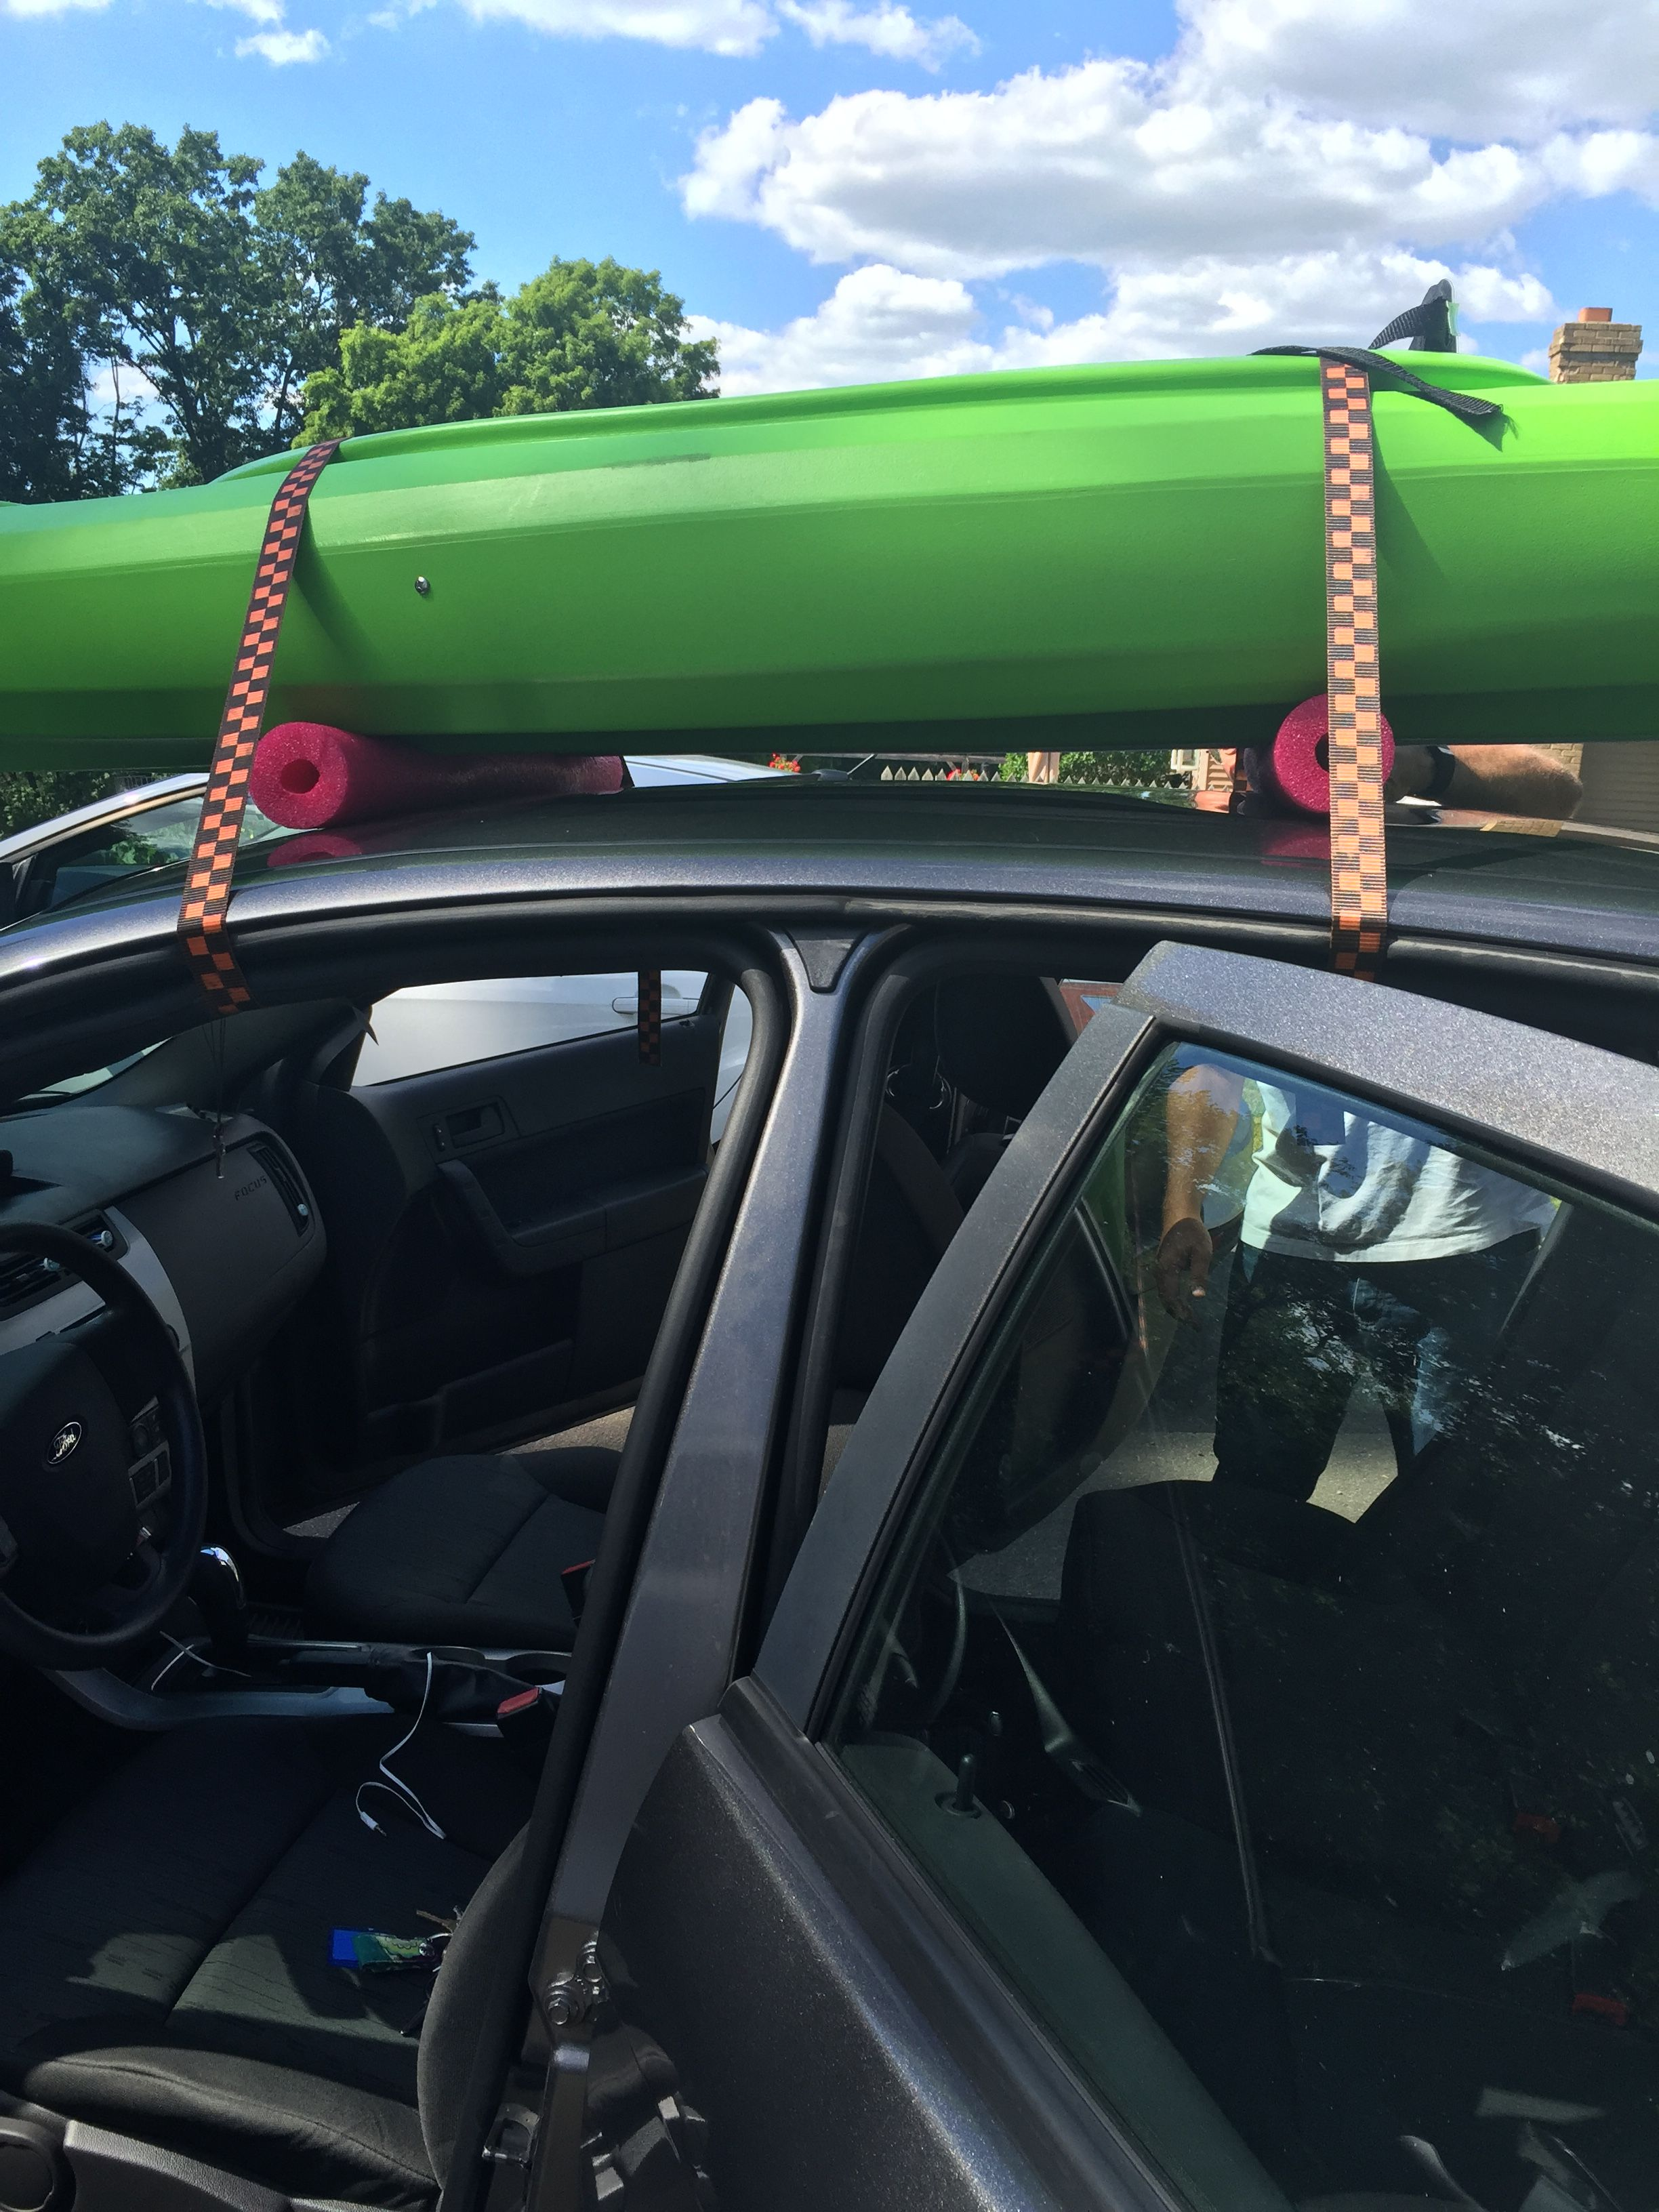 Diy Kayak Carrier With Pool Noodles Kayak Kayakcarrier Kayaking Transportingkayak Diy Kayaking Kayak Roof Rack Kayak Fishing